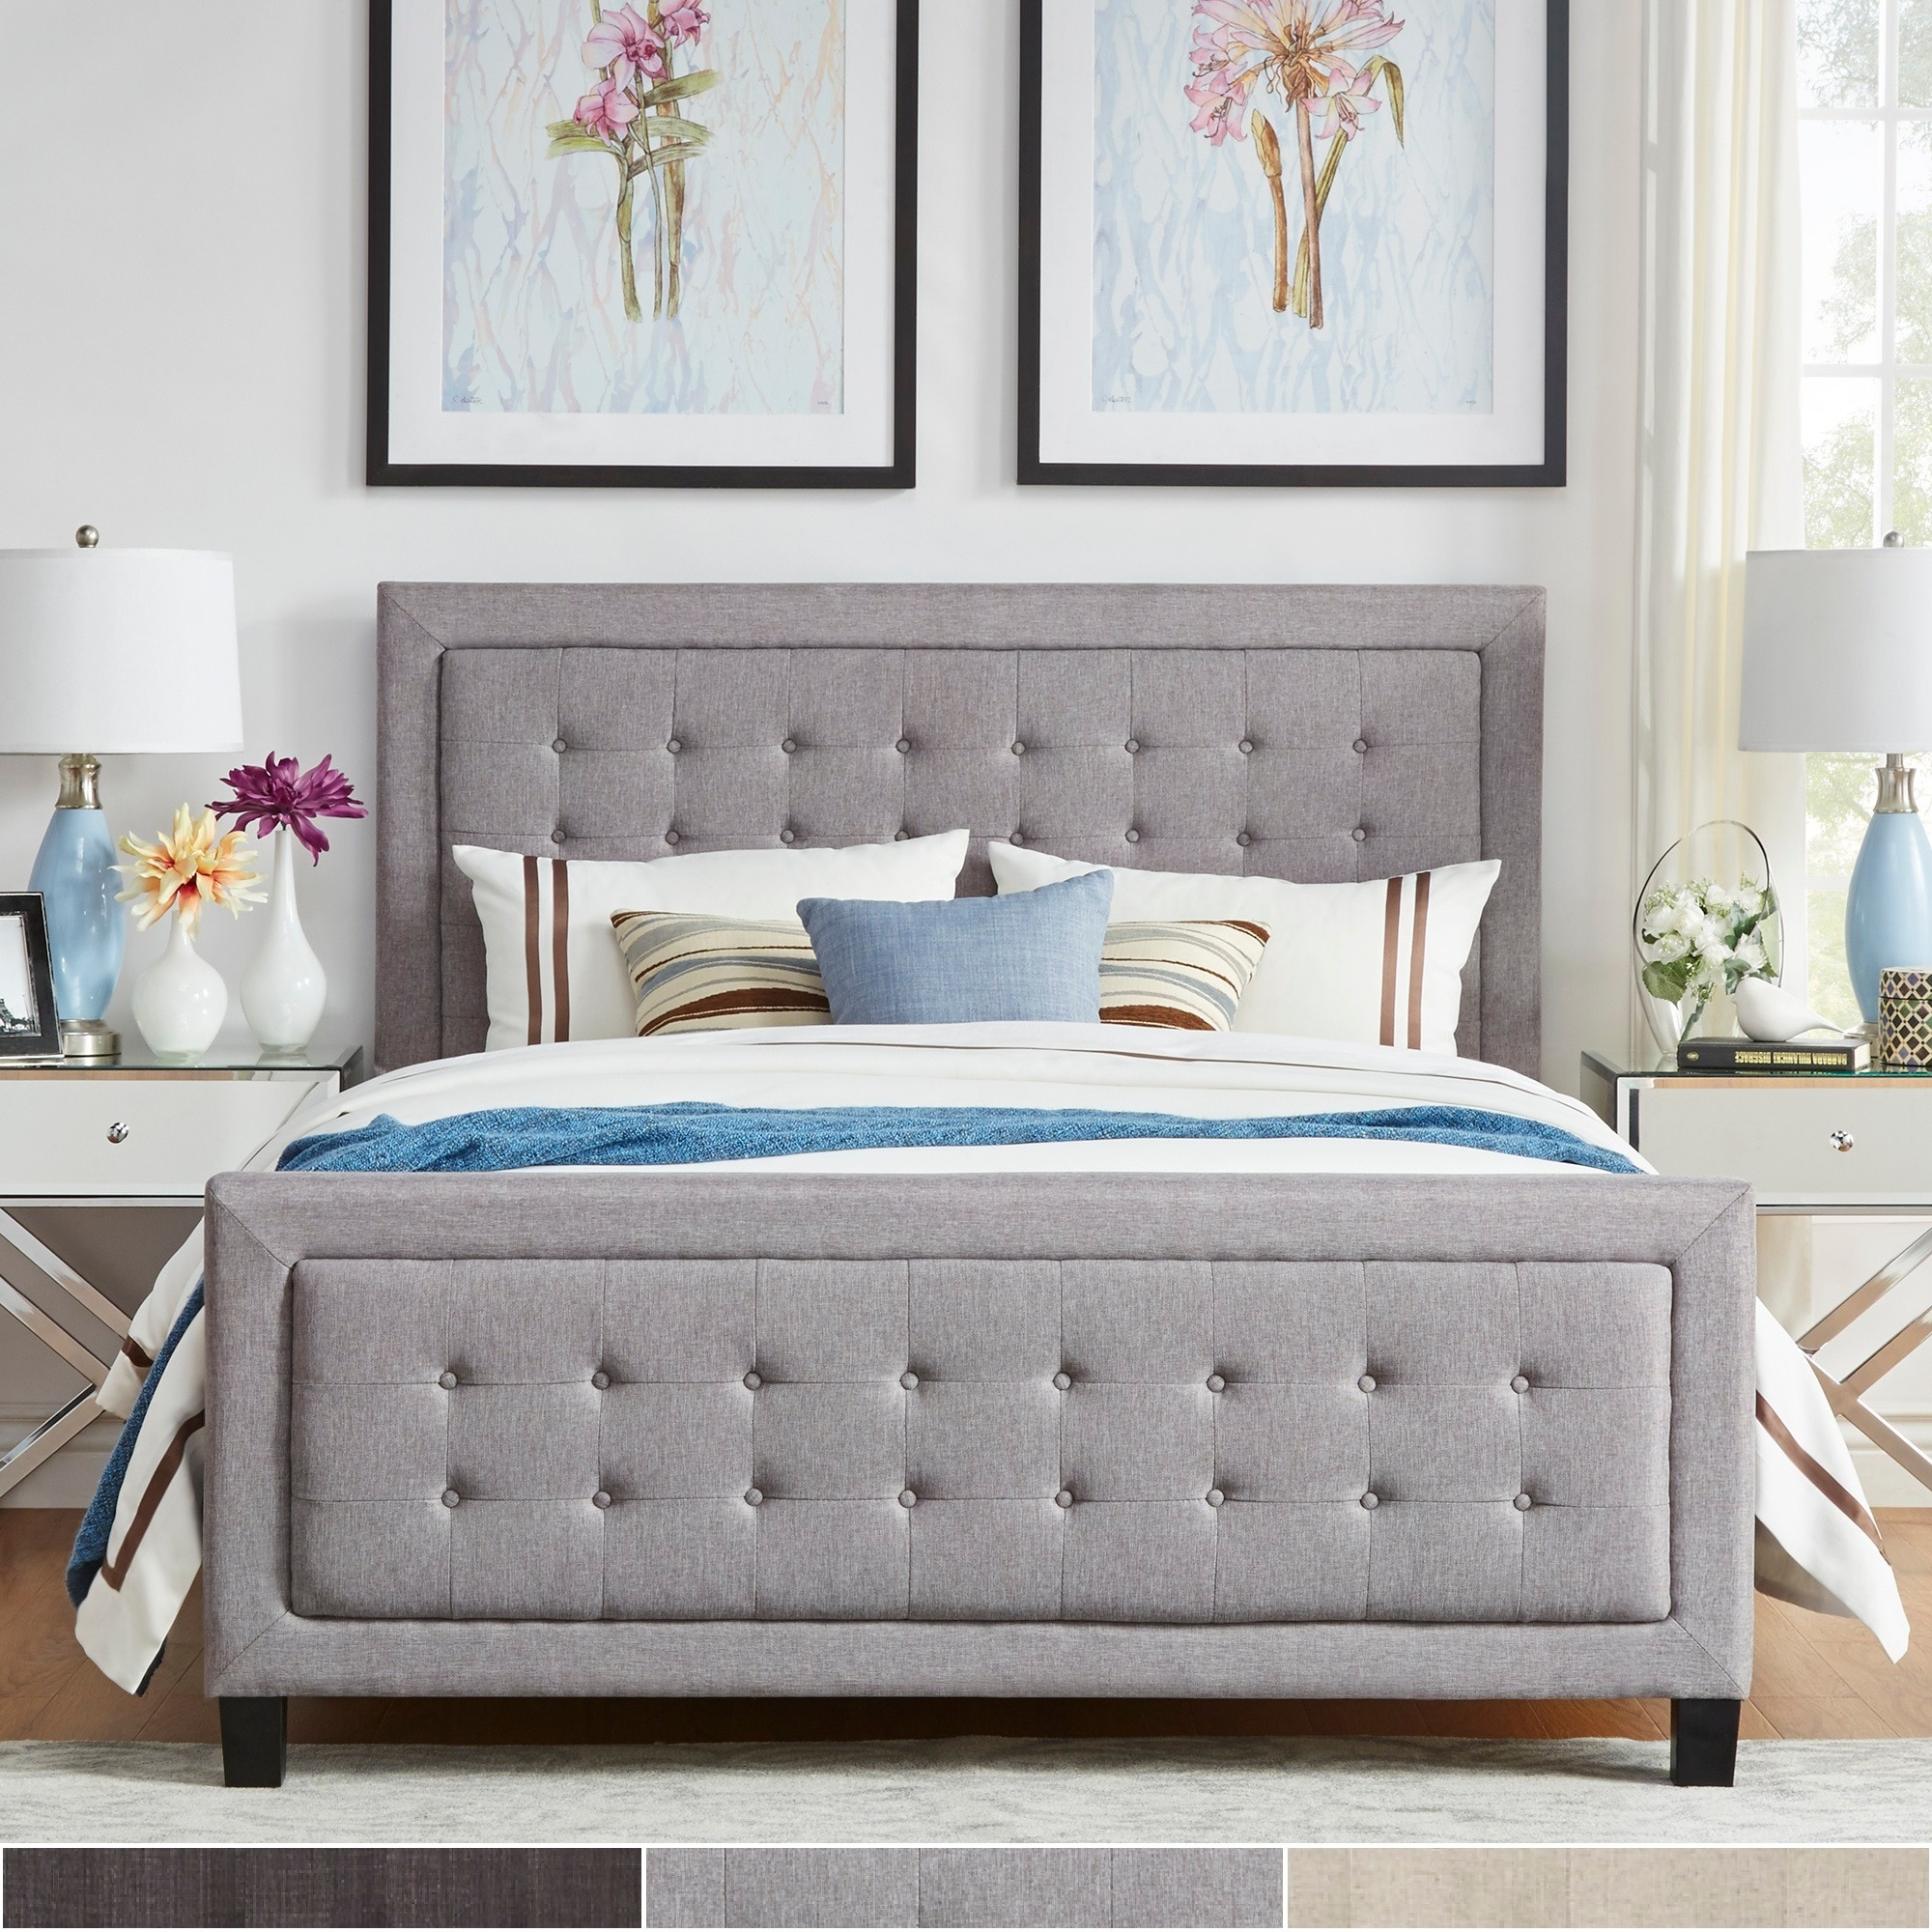 Bellevista Square Button-tufted Upholstered Queen Bed wit...